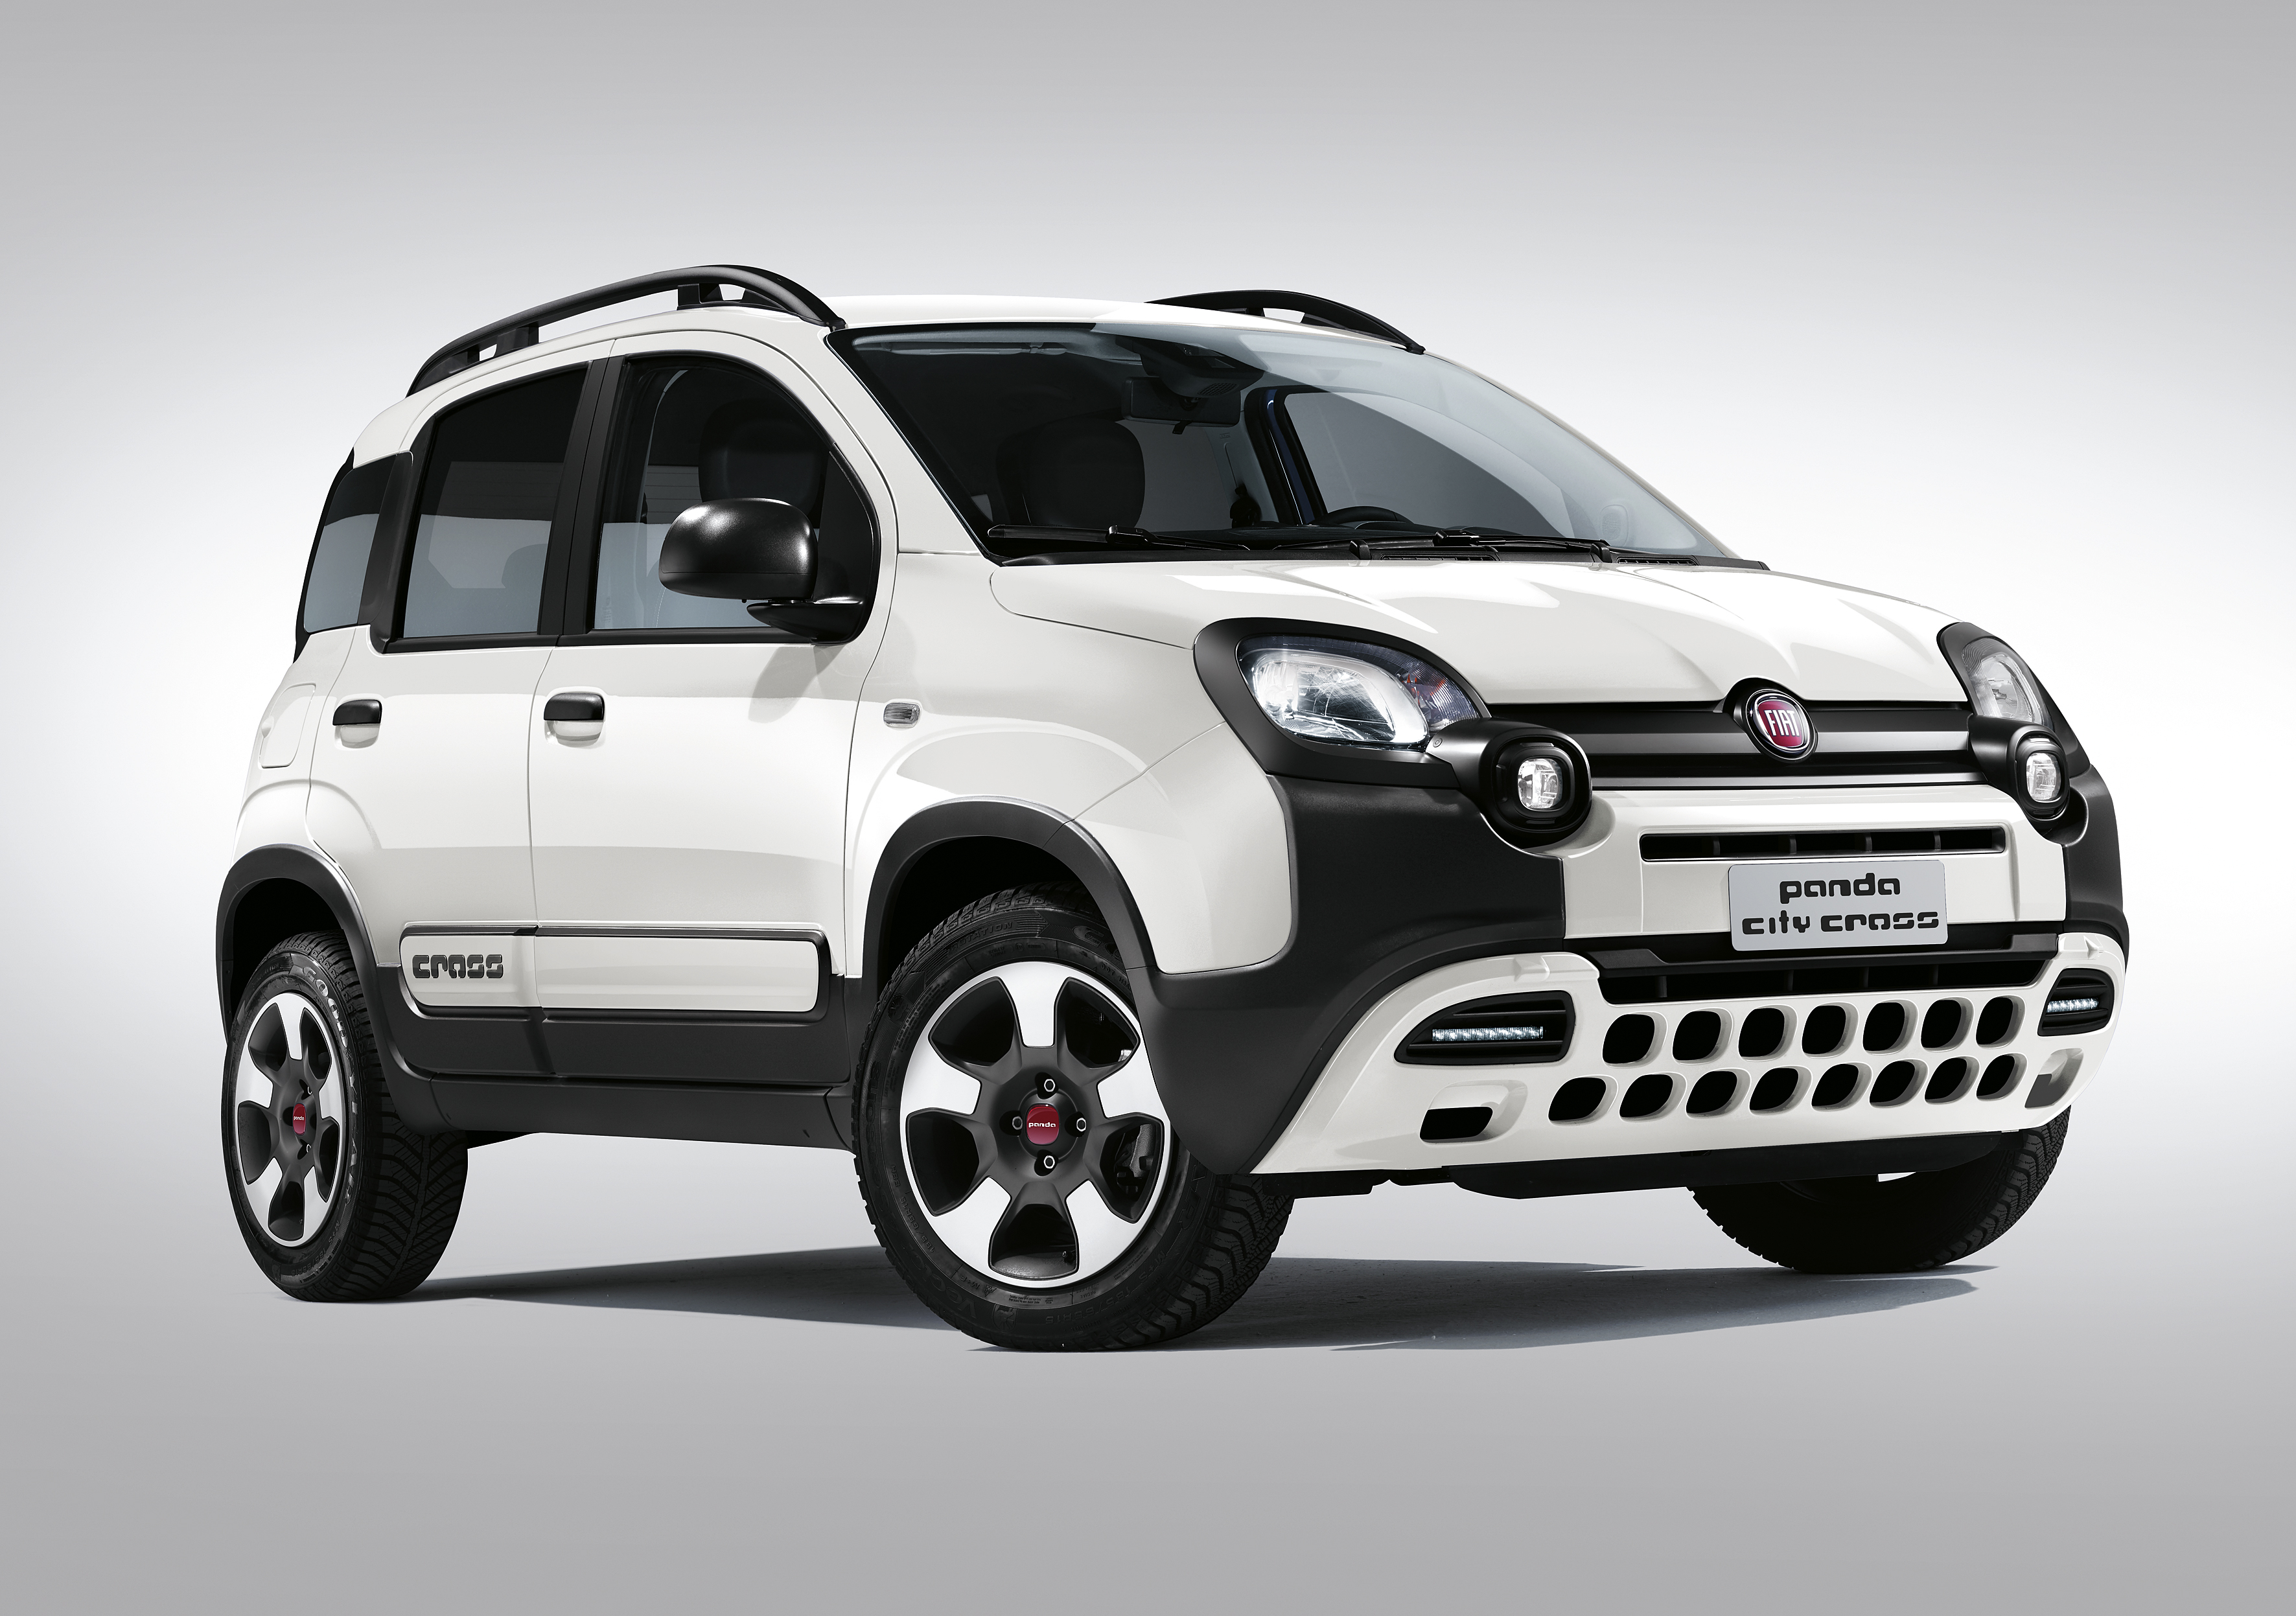 baureihe neu sortiert fiat panda city cross und fiat panda 4x4 wild sind ab sofort zu haben. Black Bedroom Furniture Sets. Home Design Ideas